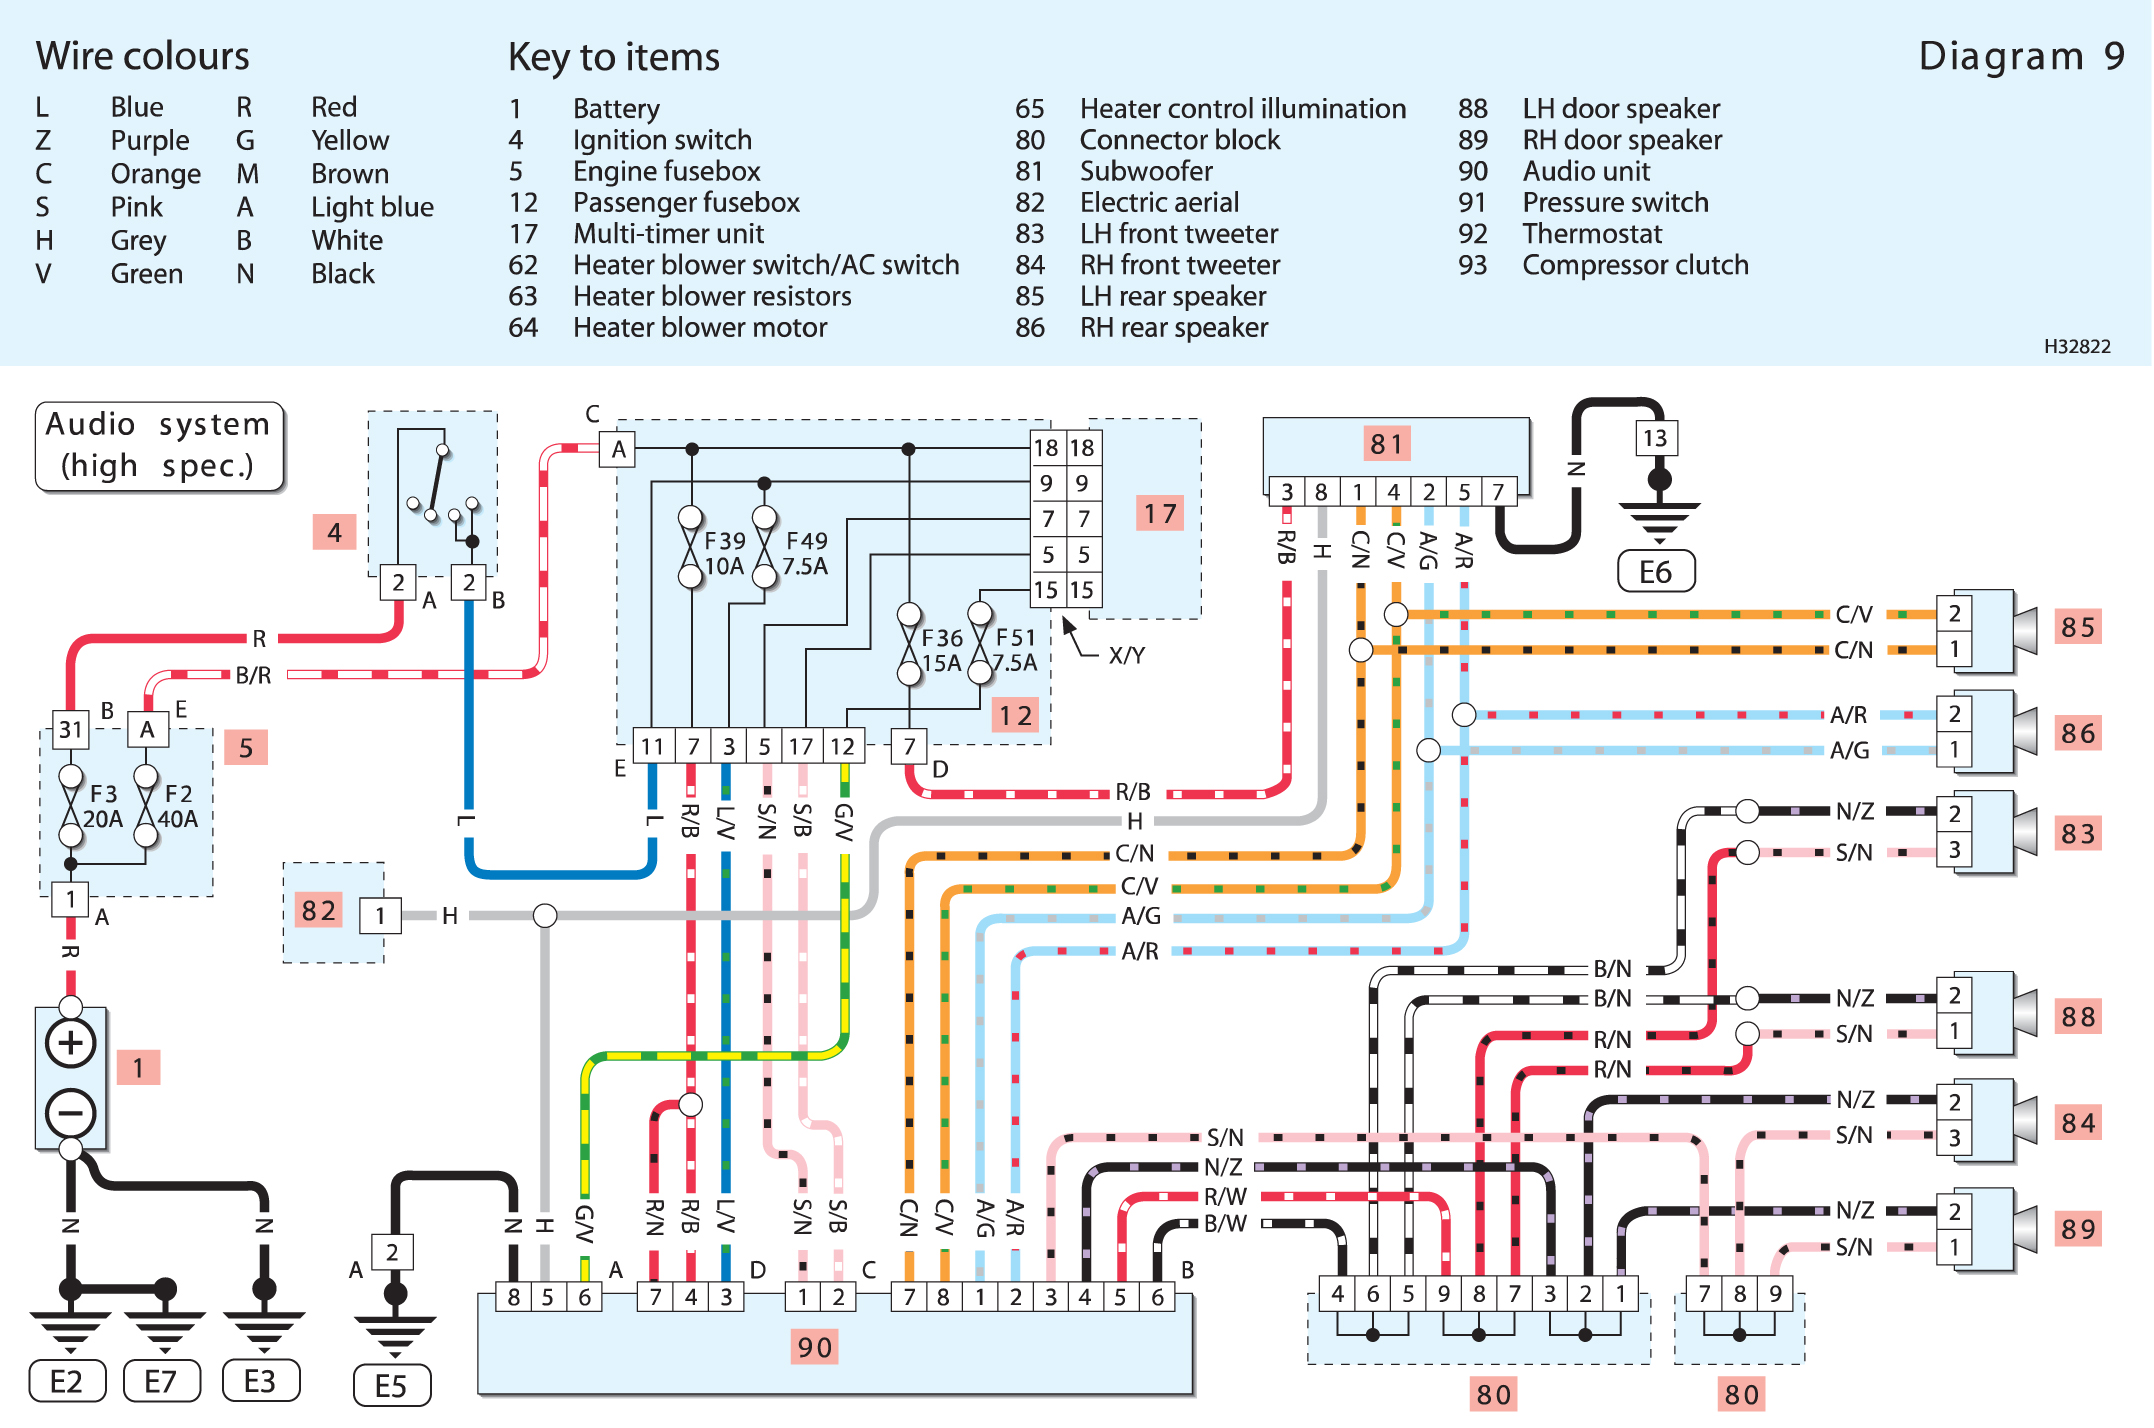 fiat uno wiring diagram detailed wiring diagram nissan juke wiring diagram fiat uno wiring diagram [ 2154 x 1428 Pixel ]